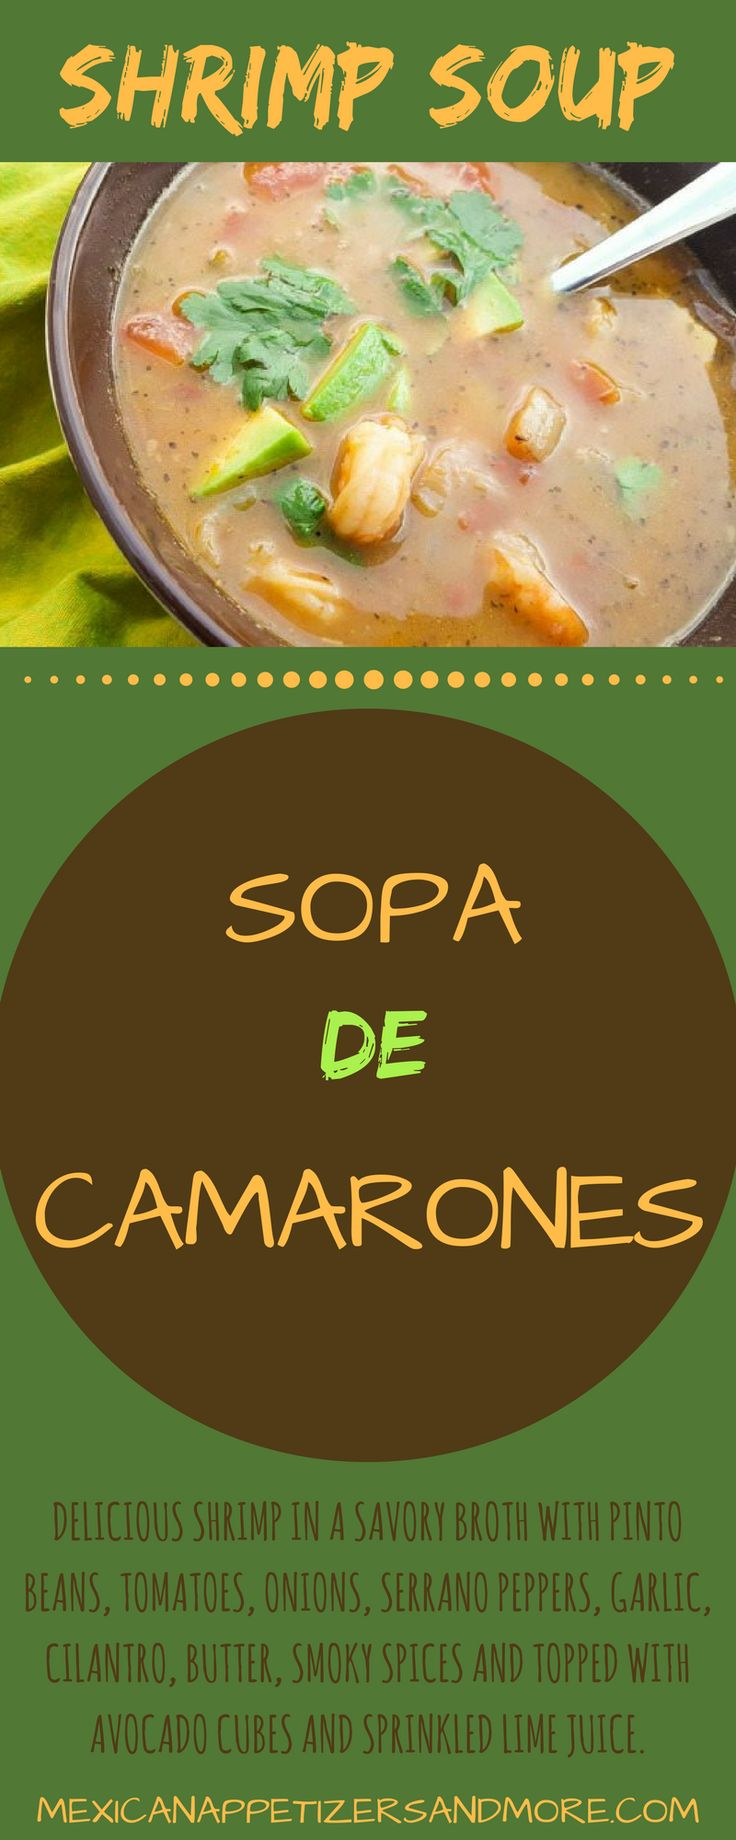 This Sopa de Camarones recipe, (shrimp soup) is made in a savory broth with shrimp, tomatoes, onions, serrano, garlic, cilantro, smoky spices and topped with avocado cubes and lime. Delicious and comforting soup.#sopadecamarones #shrimpsoup #soups #seafood | mexicanappetizersandmore.com